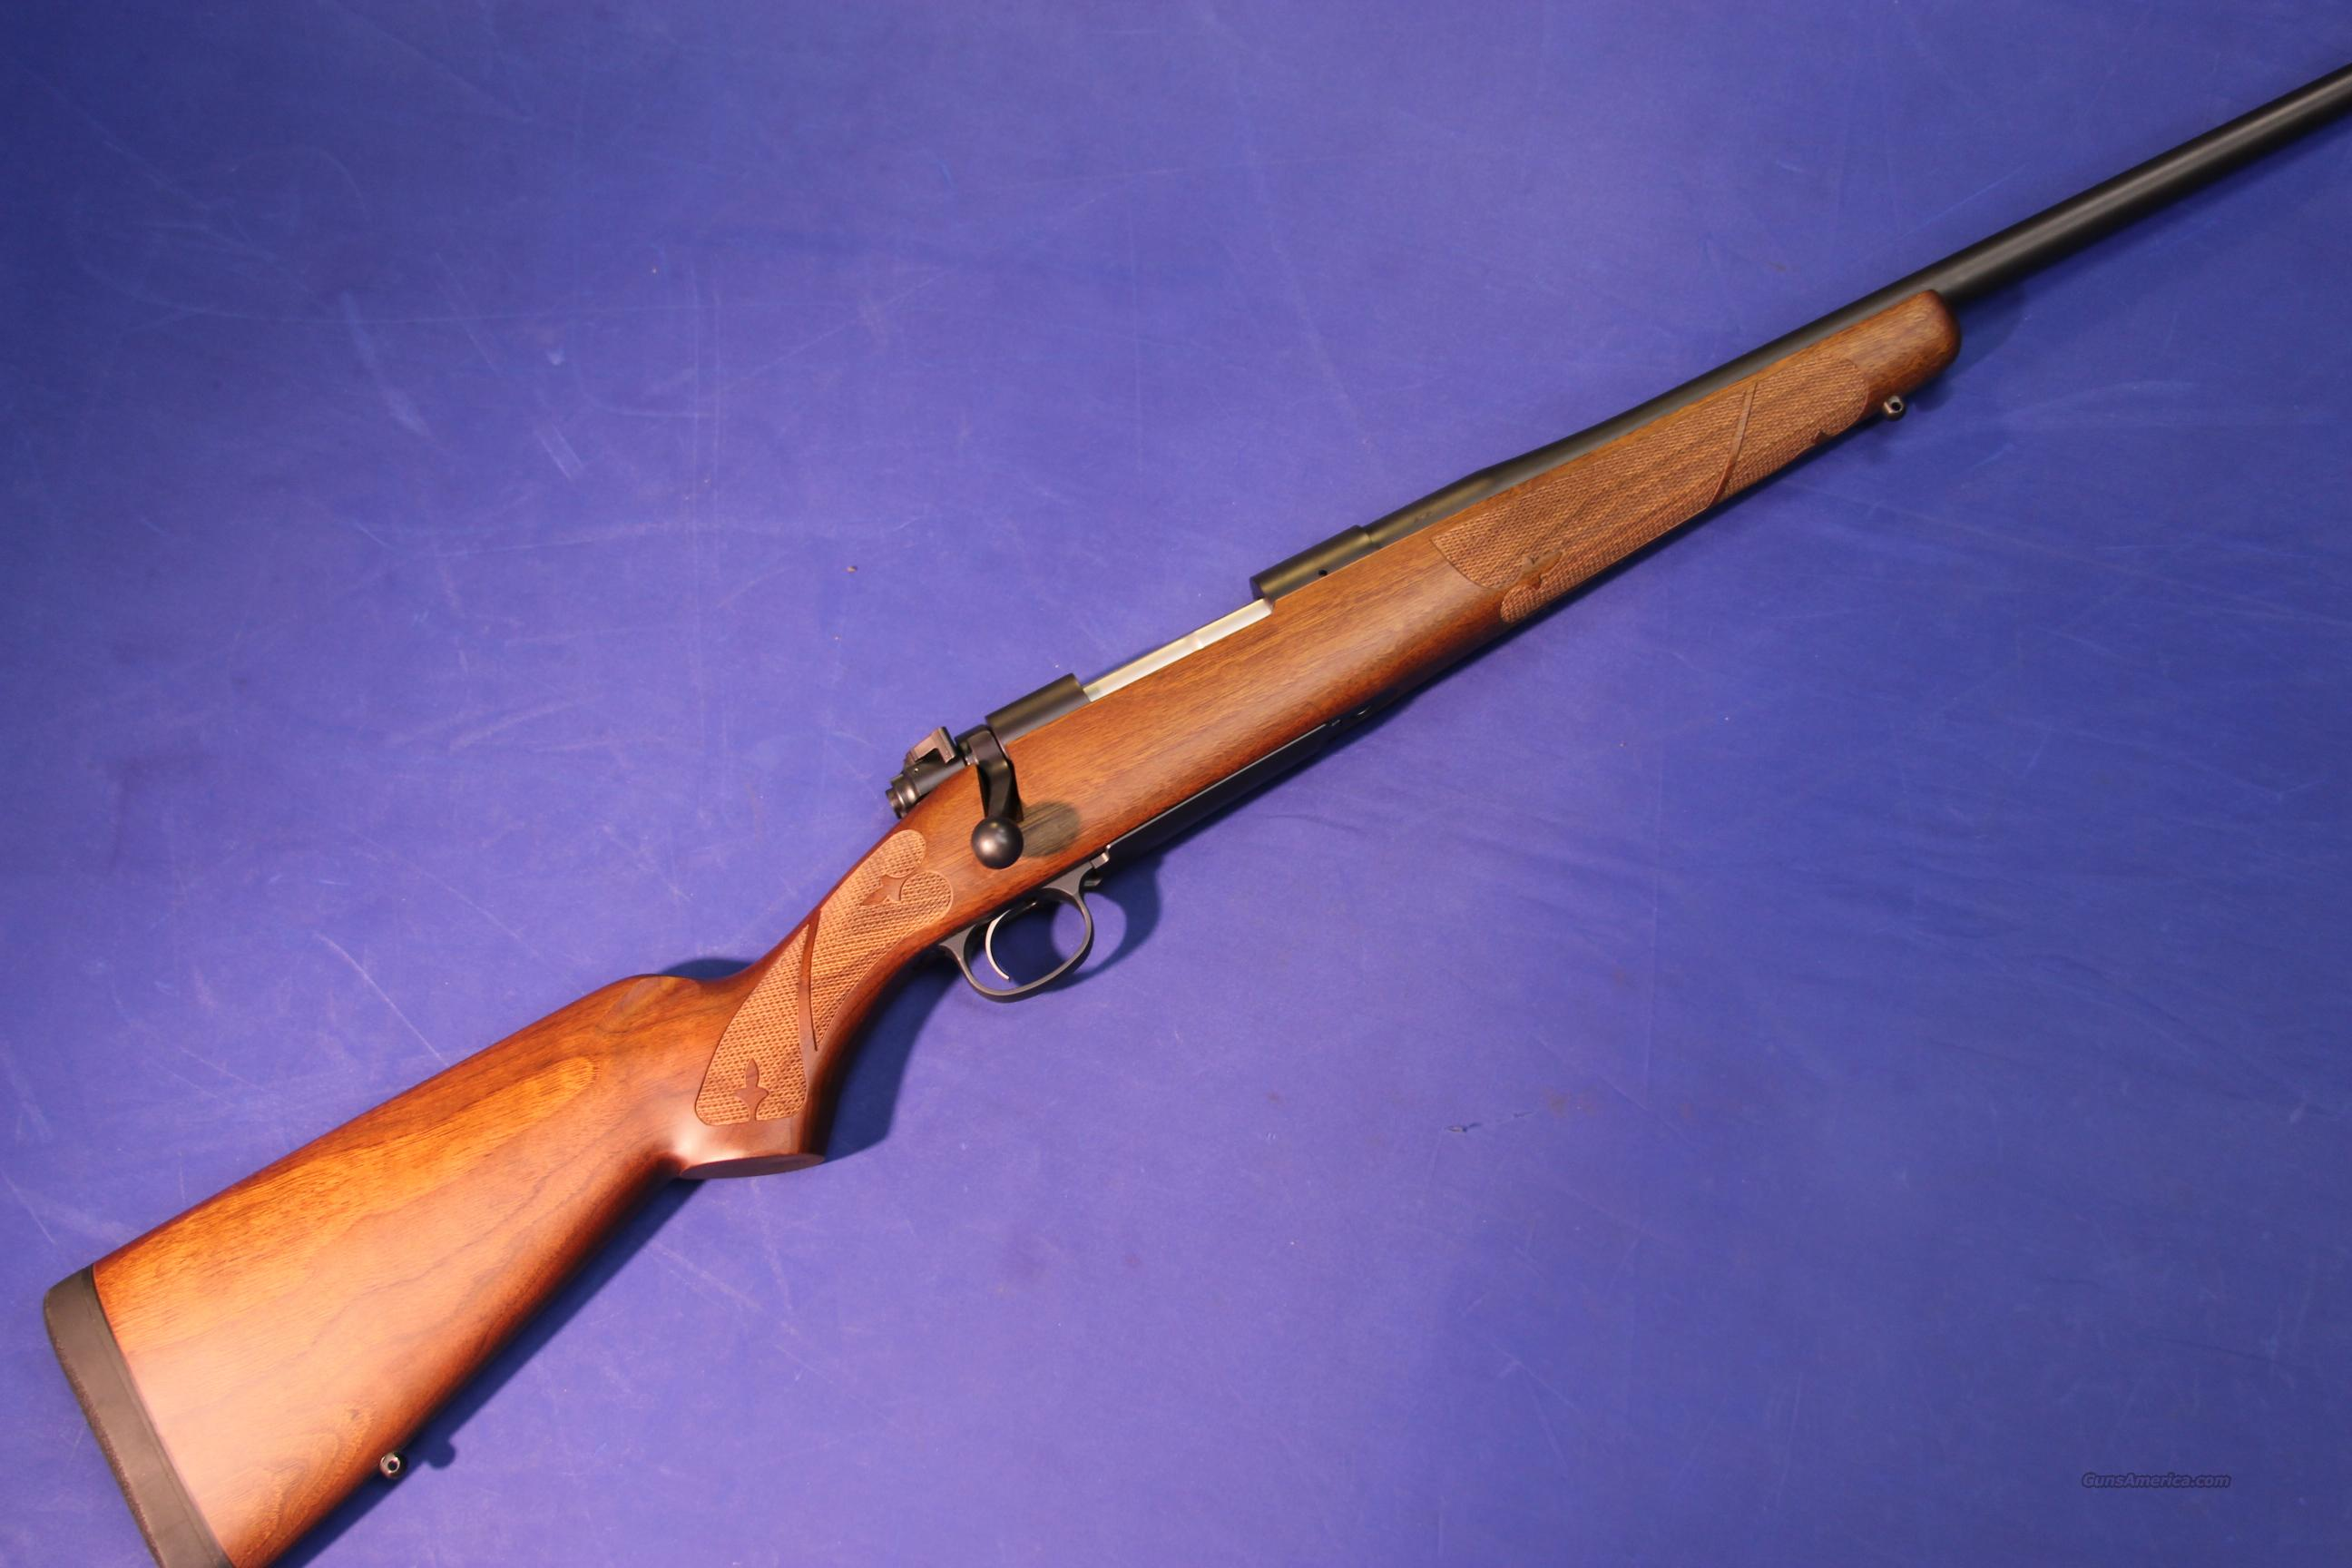 MONTANA RIFLE CO. MODEL 1999 AMERICAN STANDARD .308 WIN - NEW!  Guns > Rifles > Montana Rifle Company Rifles